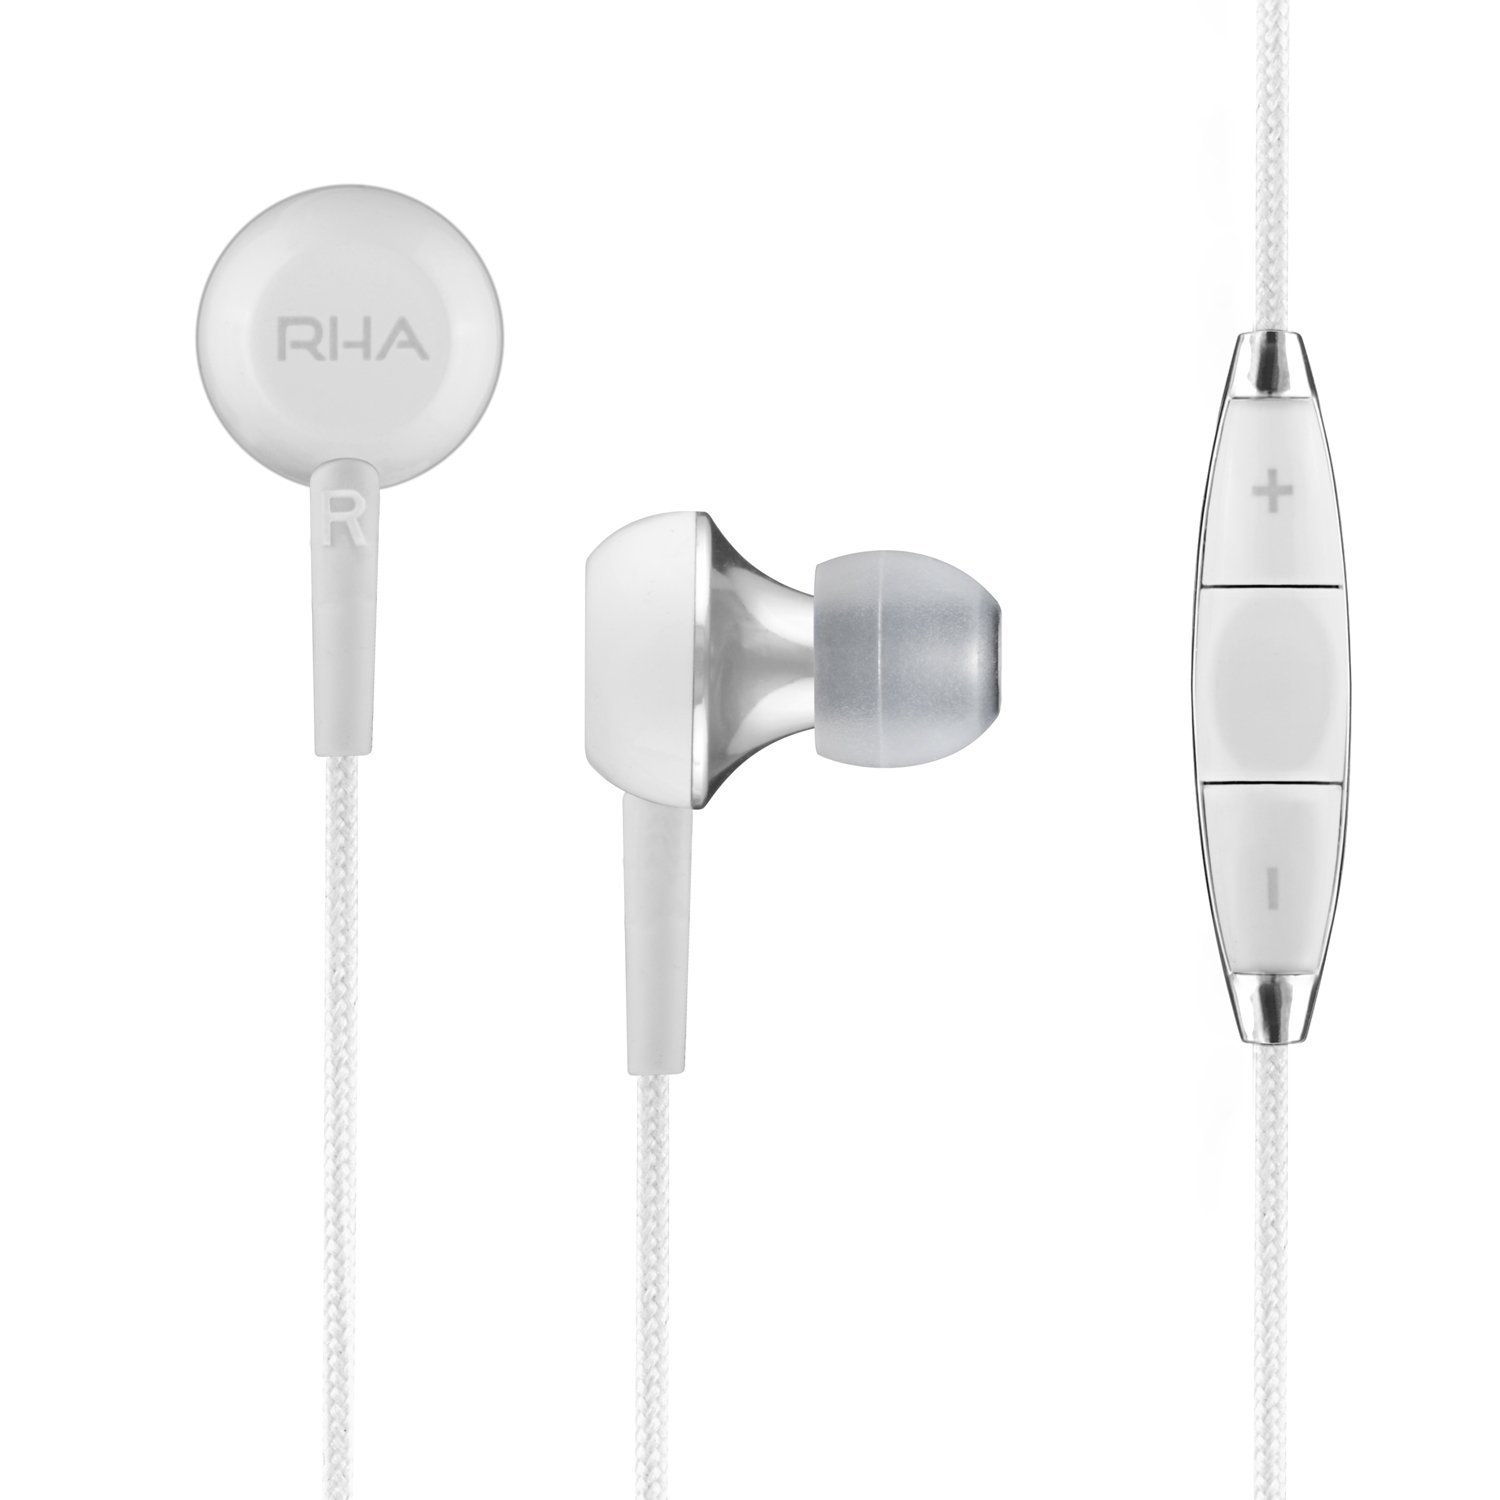 все цены на RHA MA450i Noise Isolating In-Ear Headphone with Remote and Microphone онлайн